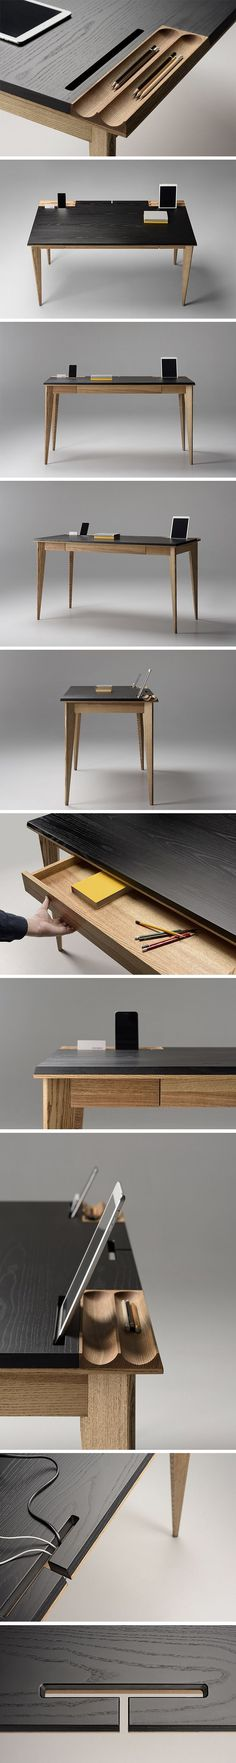 A regular desk with a drawer seems just plain drab compared to the uber-cool OLLLY desk! Not only handsome, it's also designed to accommodate all your modern devices and not-so-modern apparatuses. Aside from a pull-out drawer at its center, it also features grooves on either side to hold and keep your pens, pencils, stylus or other writing utensils from rolling around. It also has openings dedicated to propping up your tablet, phone or other slim techs for easy viewing